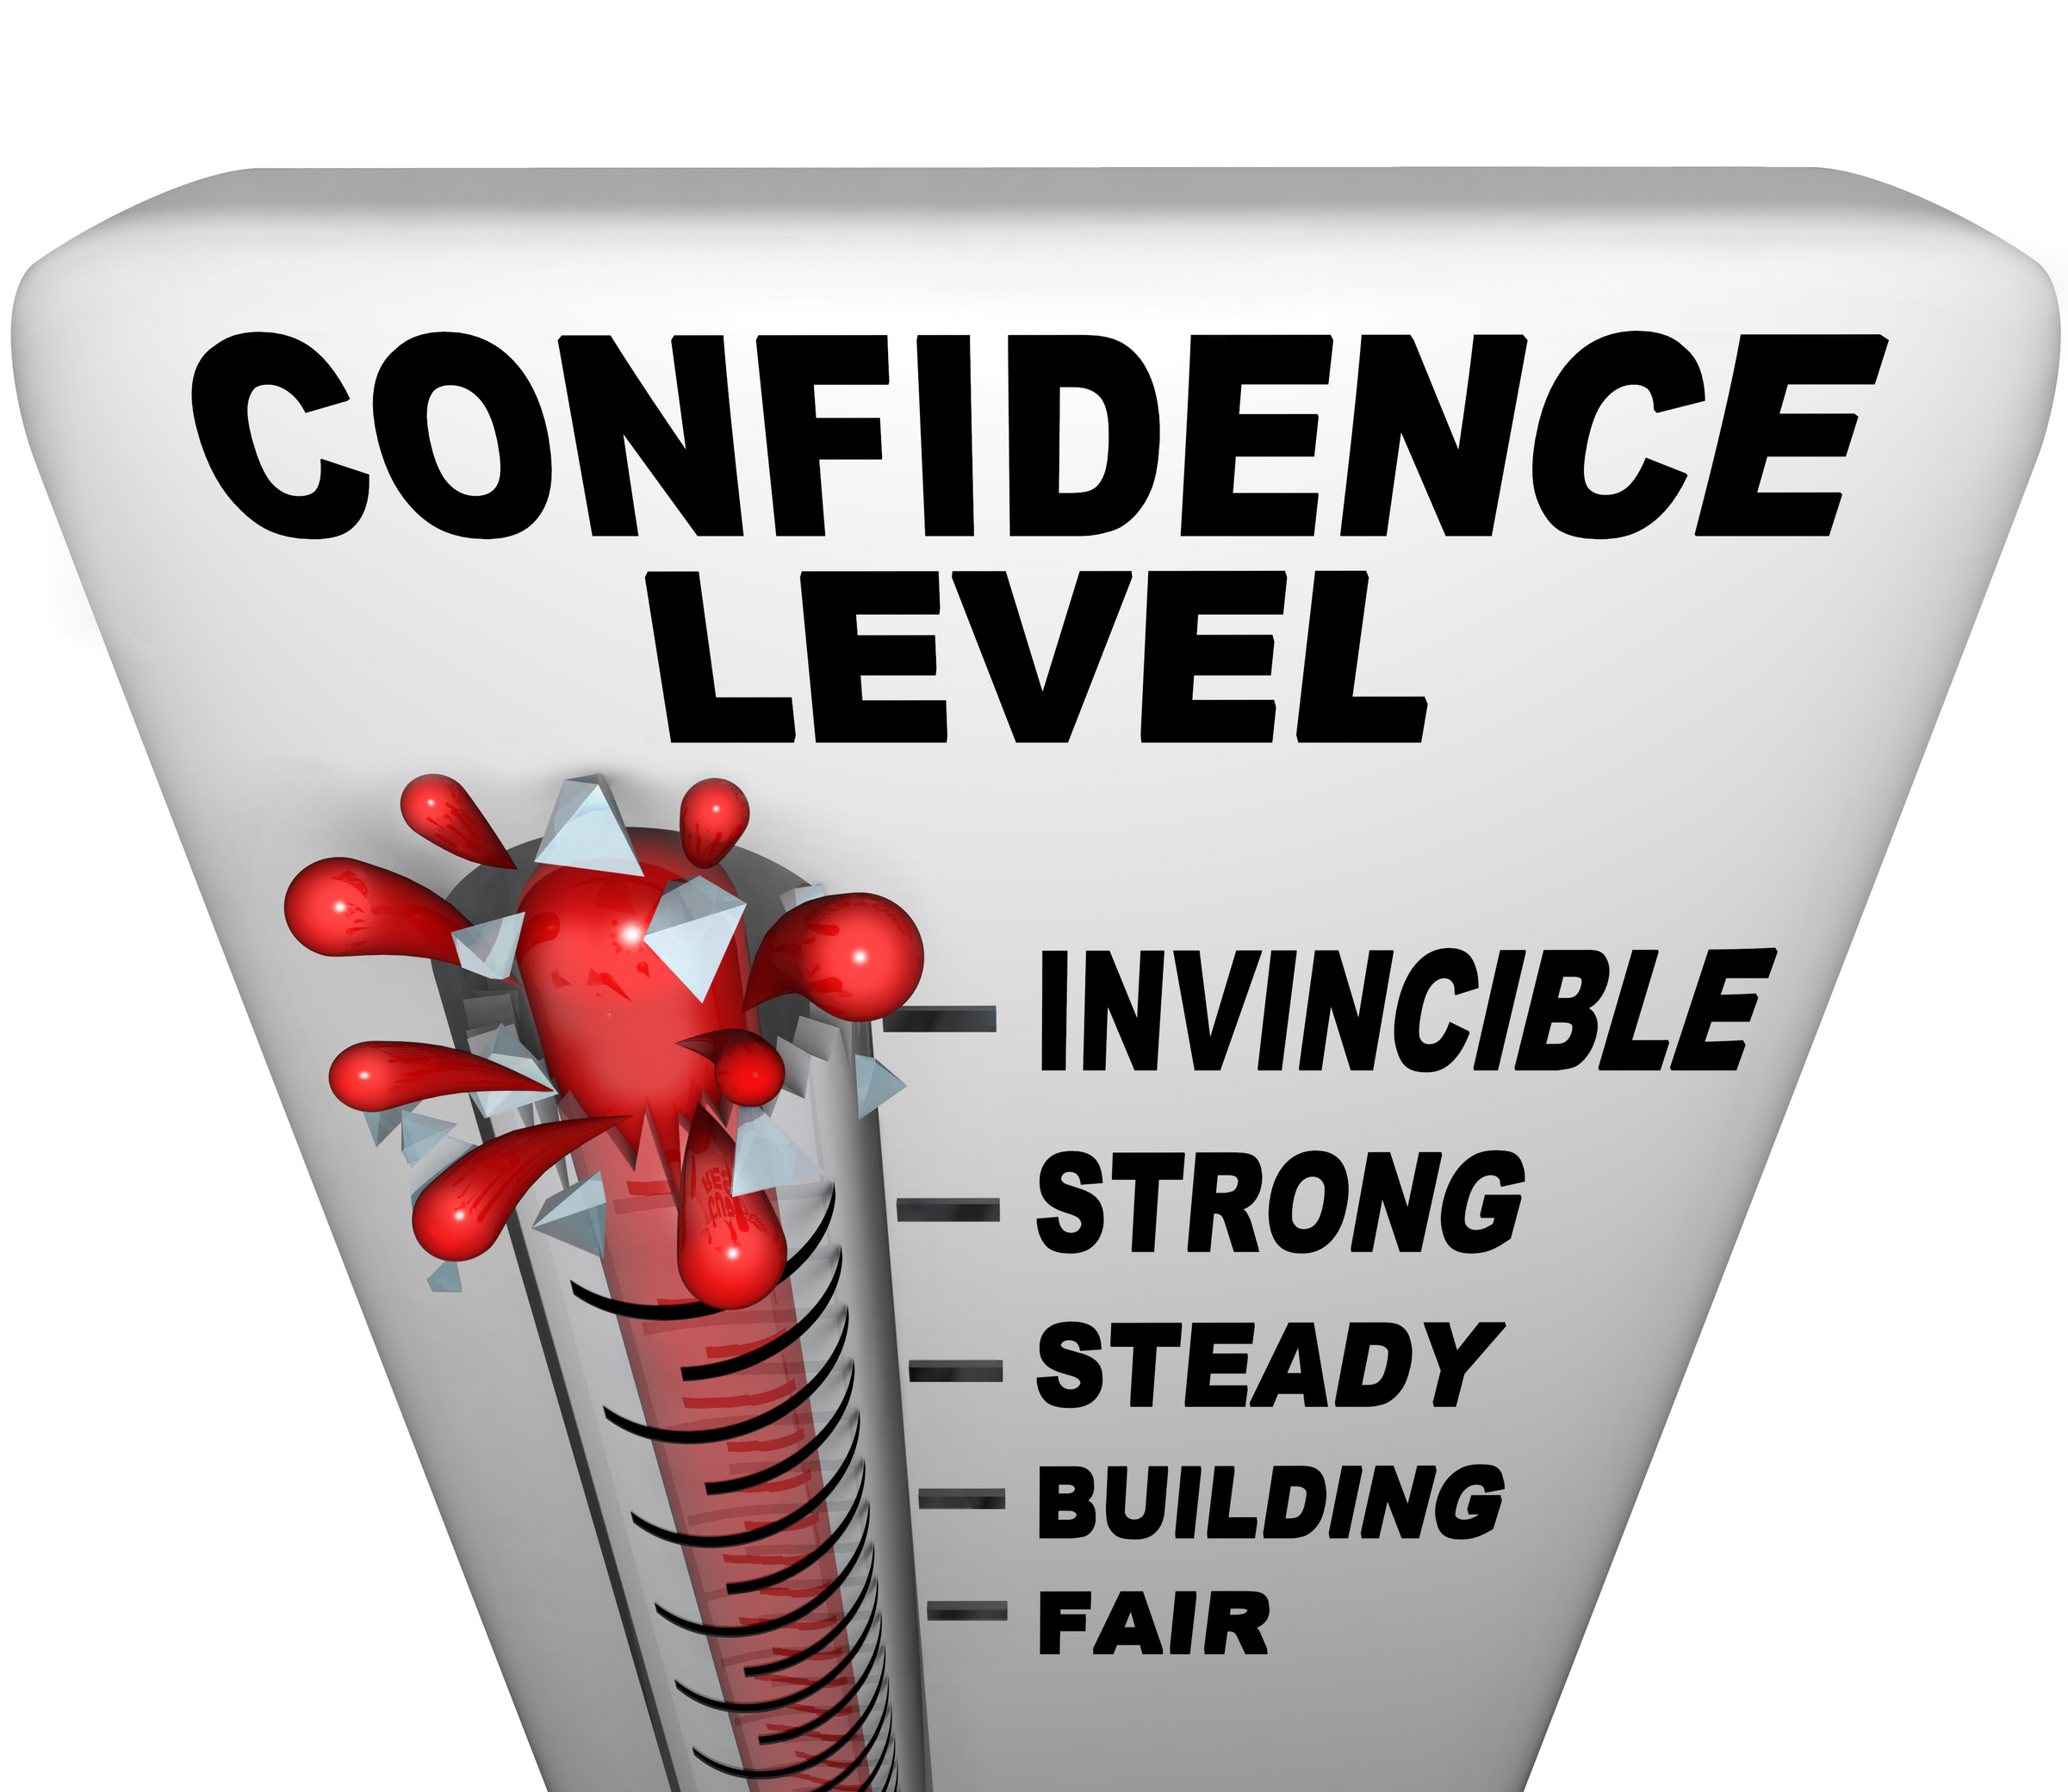 Free confidence.jpg phone wallpaper by tribeca